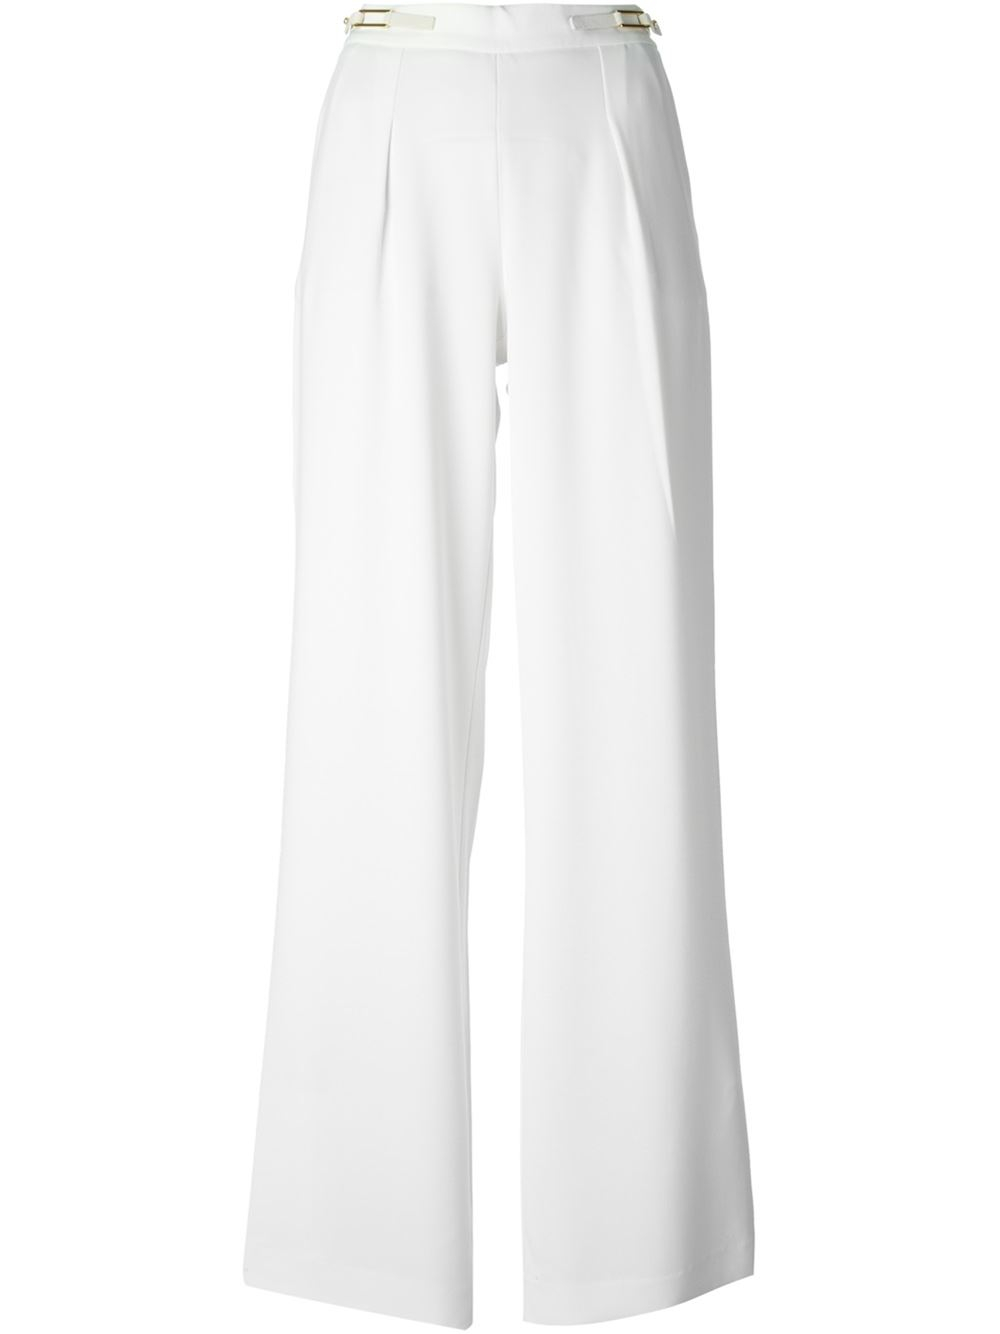 Find white high waisted wide leg pants at ShopStyle. Shop the latest collection of white high waisted wide leg pants from the most popular stores -.